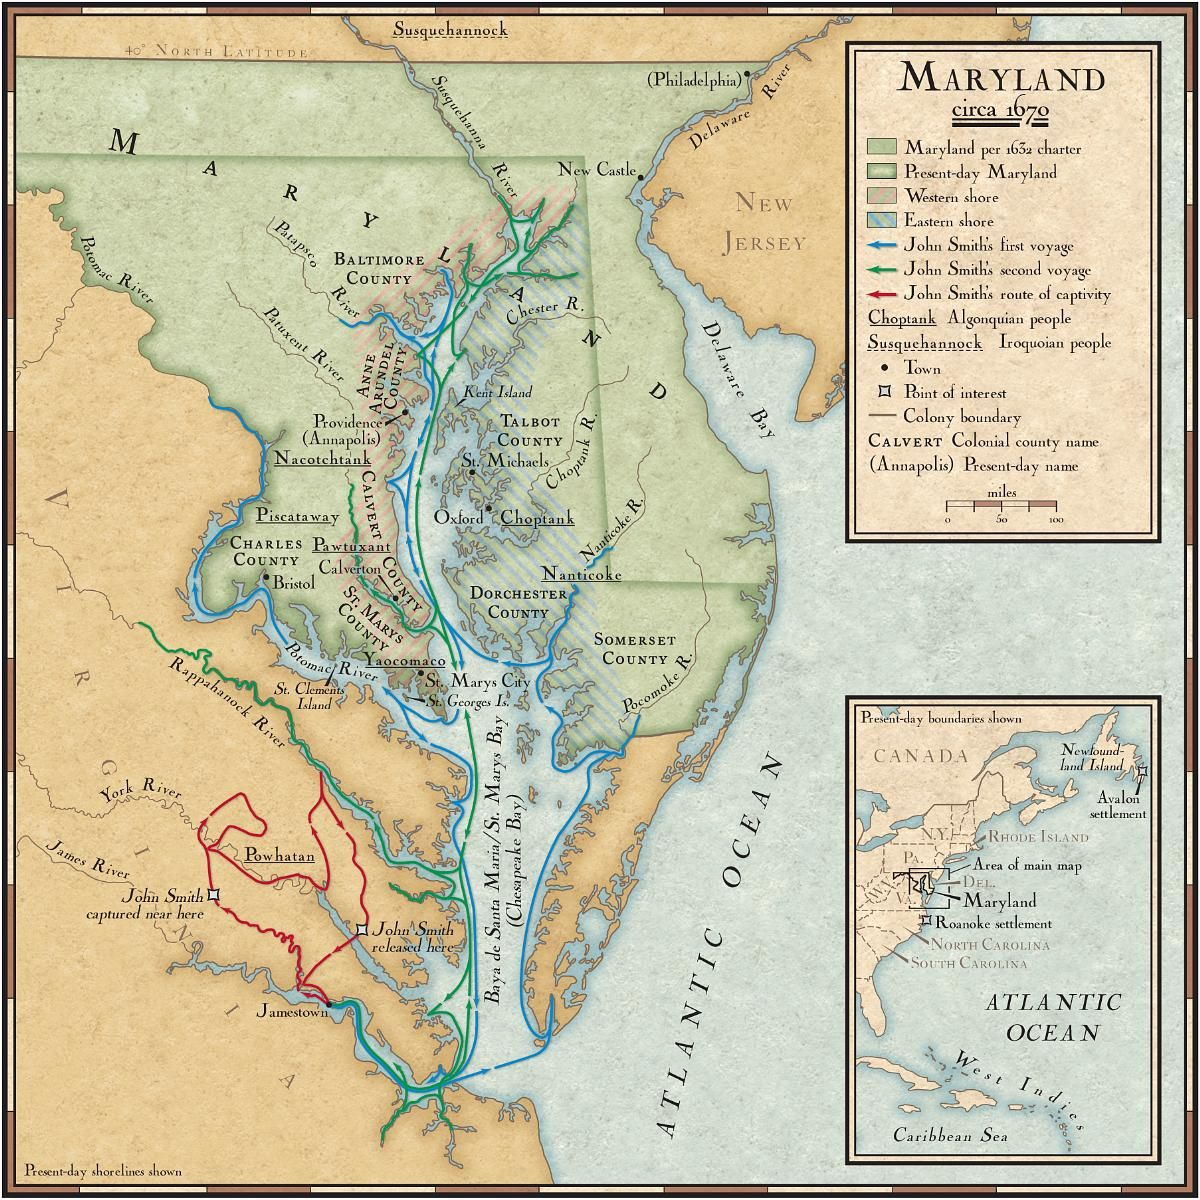 John Smith S Exploration Routes In The Chesapeake Bay National Geographic Society Sprawls across an area larger than connecticut; the chesapeake bay